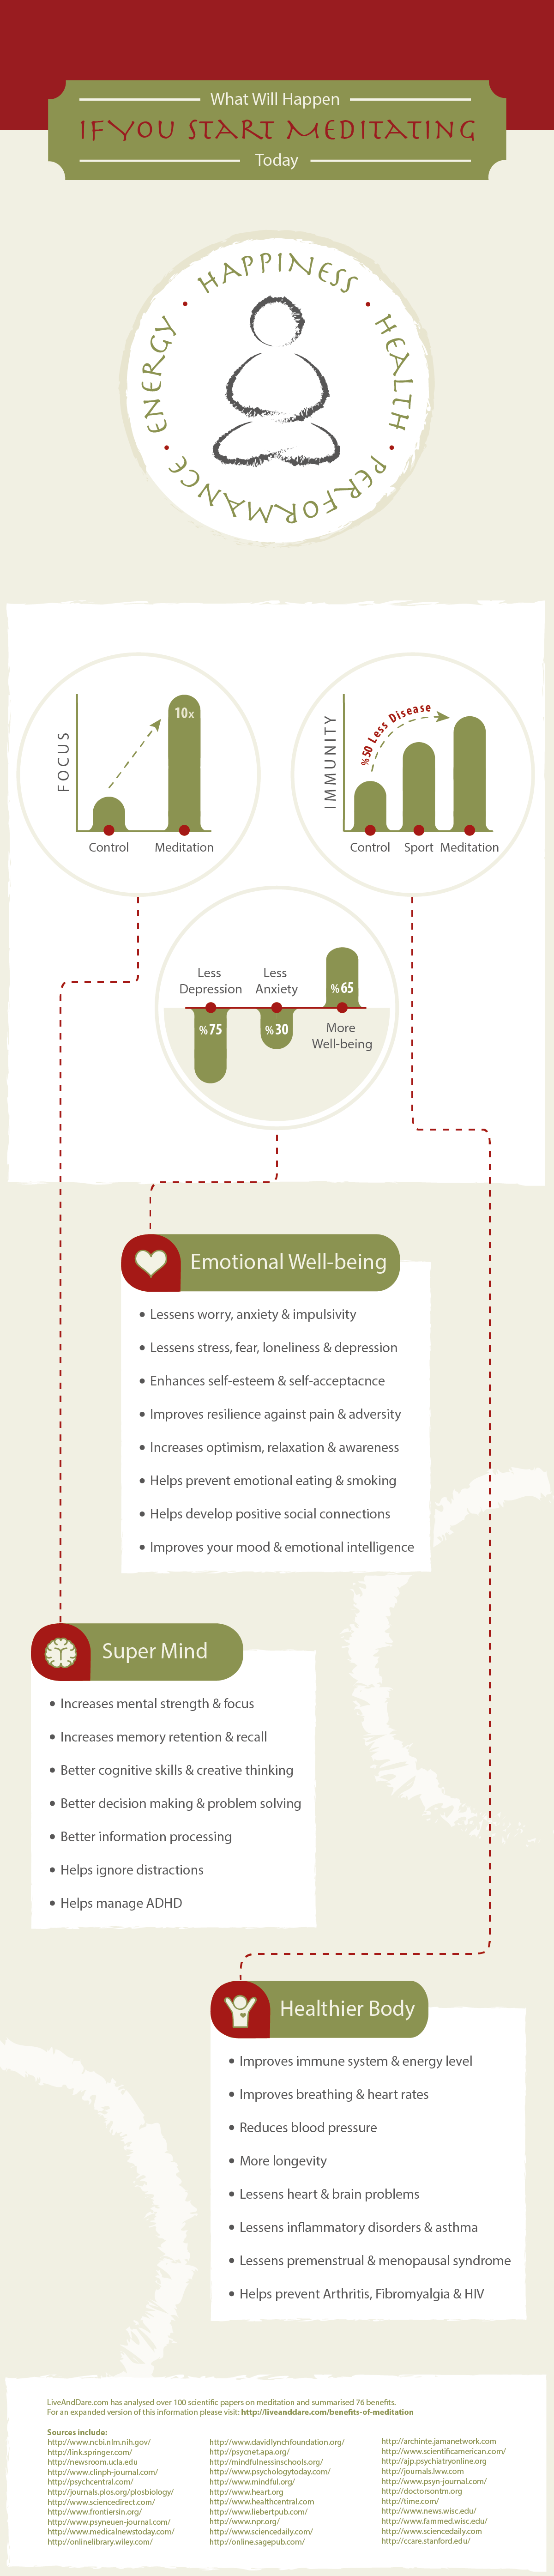 76 Scientifically Proven Health Benefits Of Meditation Infographic